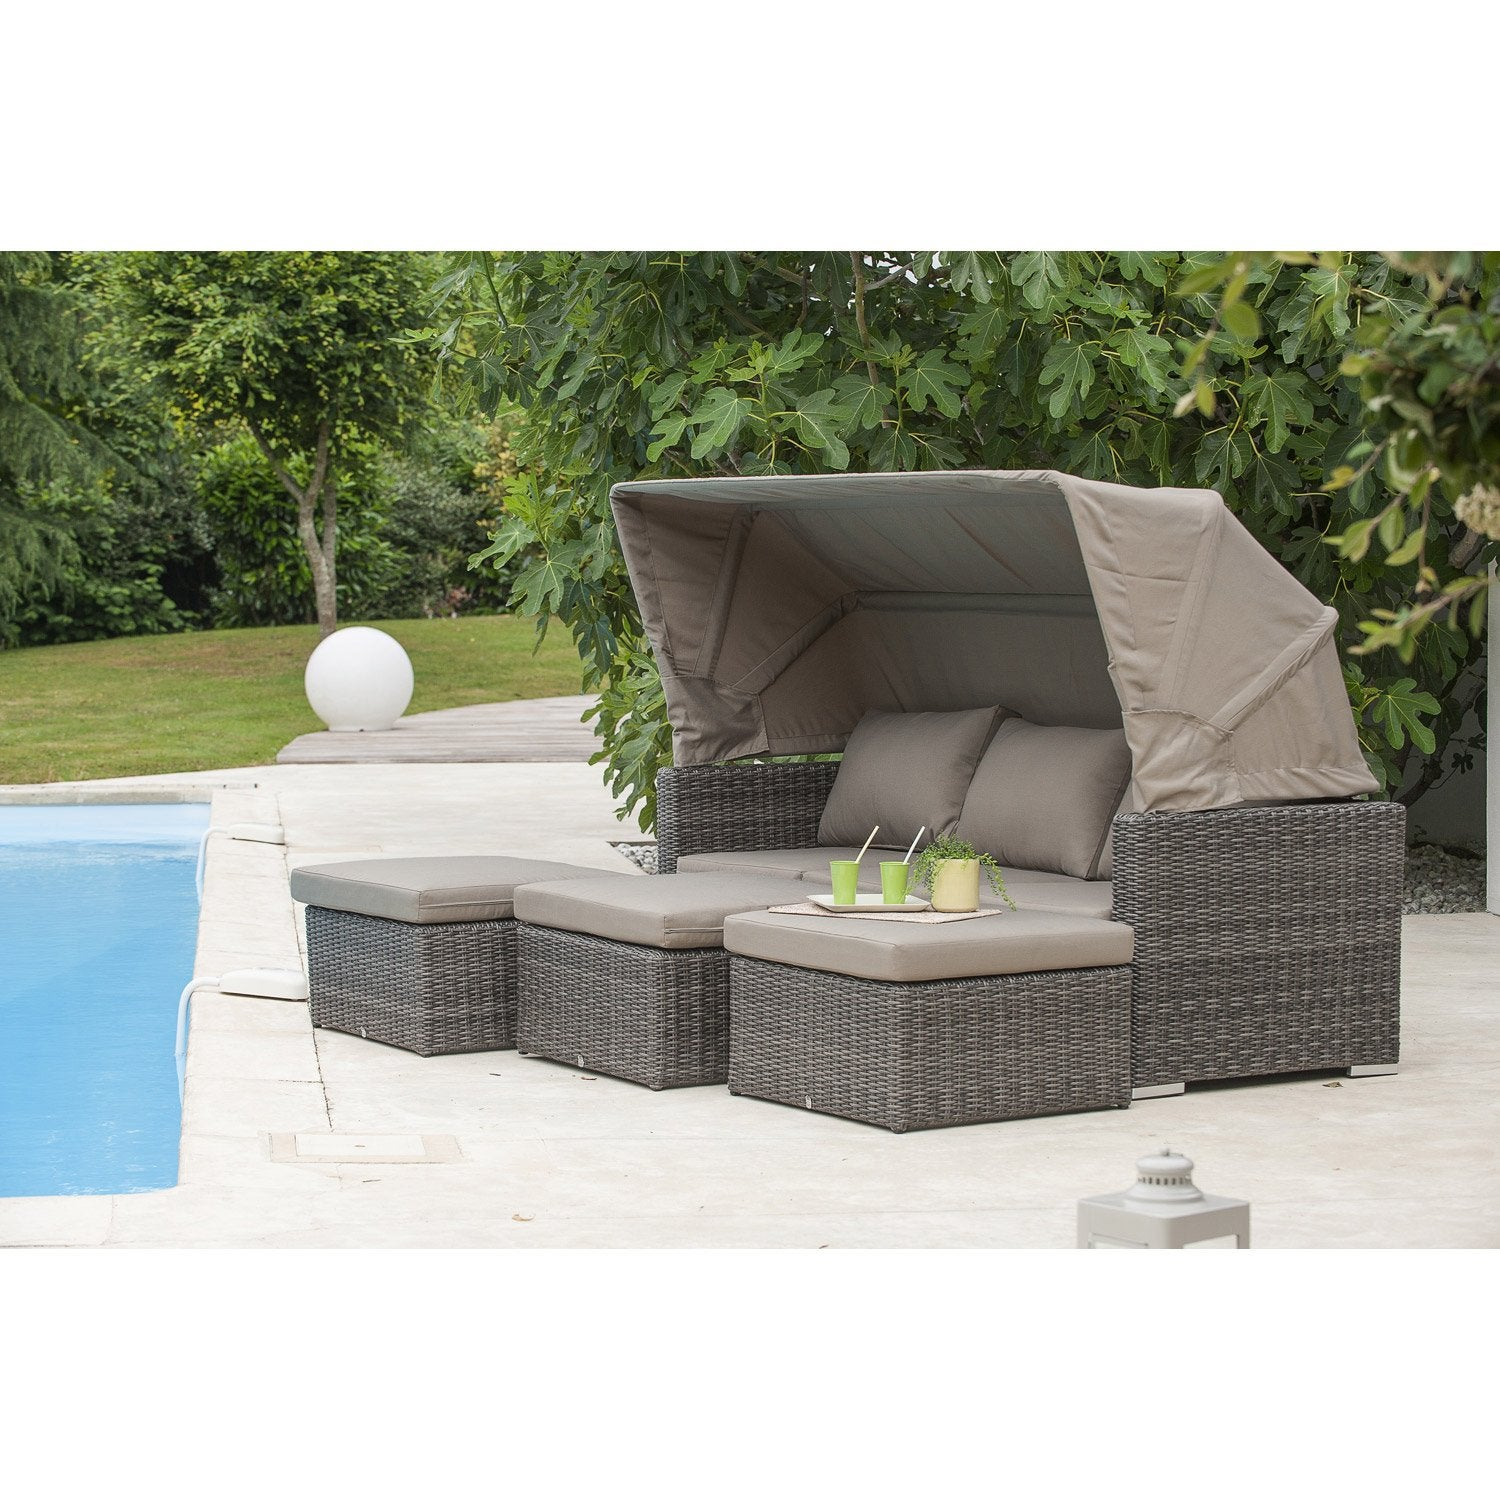 Salon bas de jardin caleche r sine tress e gris anthracite for Petit salon de jardin original